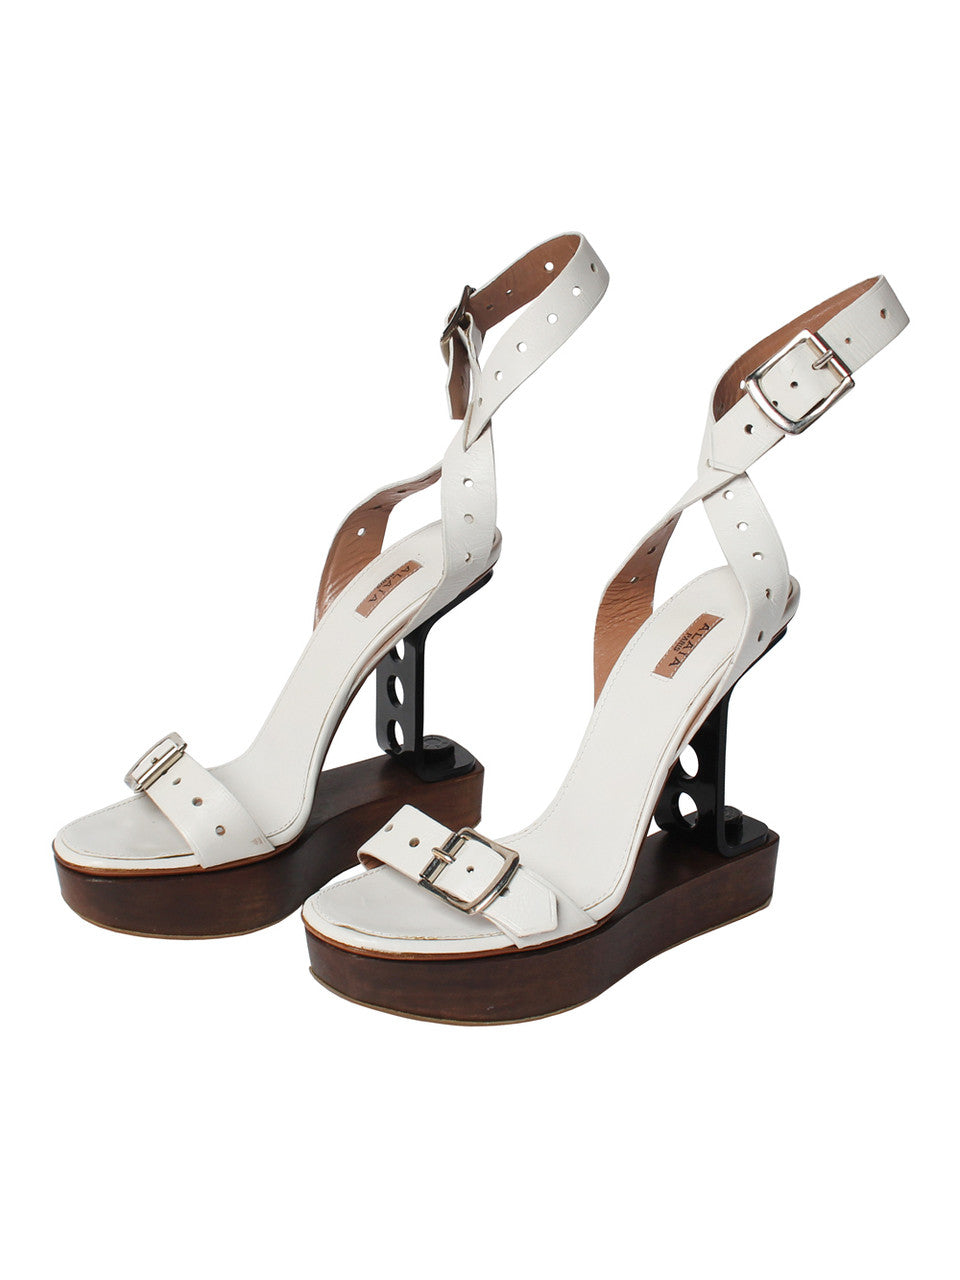 Alaia Wooden Platforms With Hardware Wedge Heel